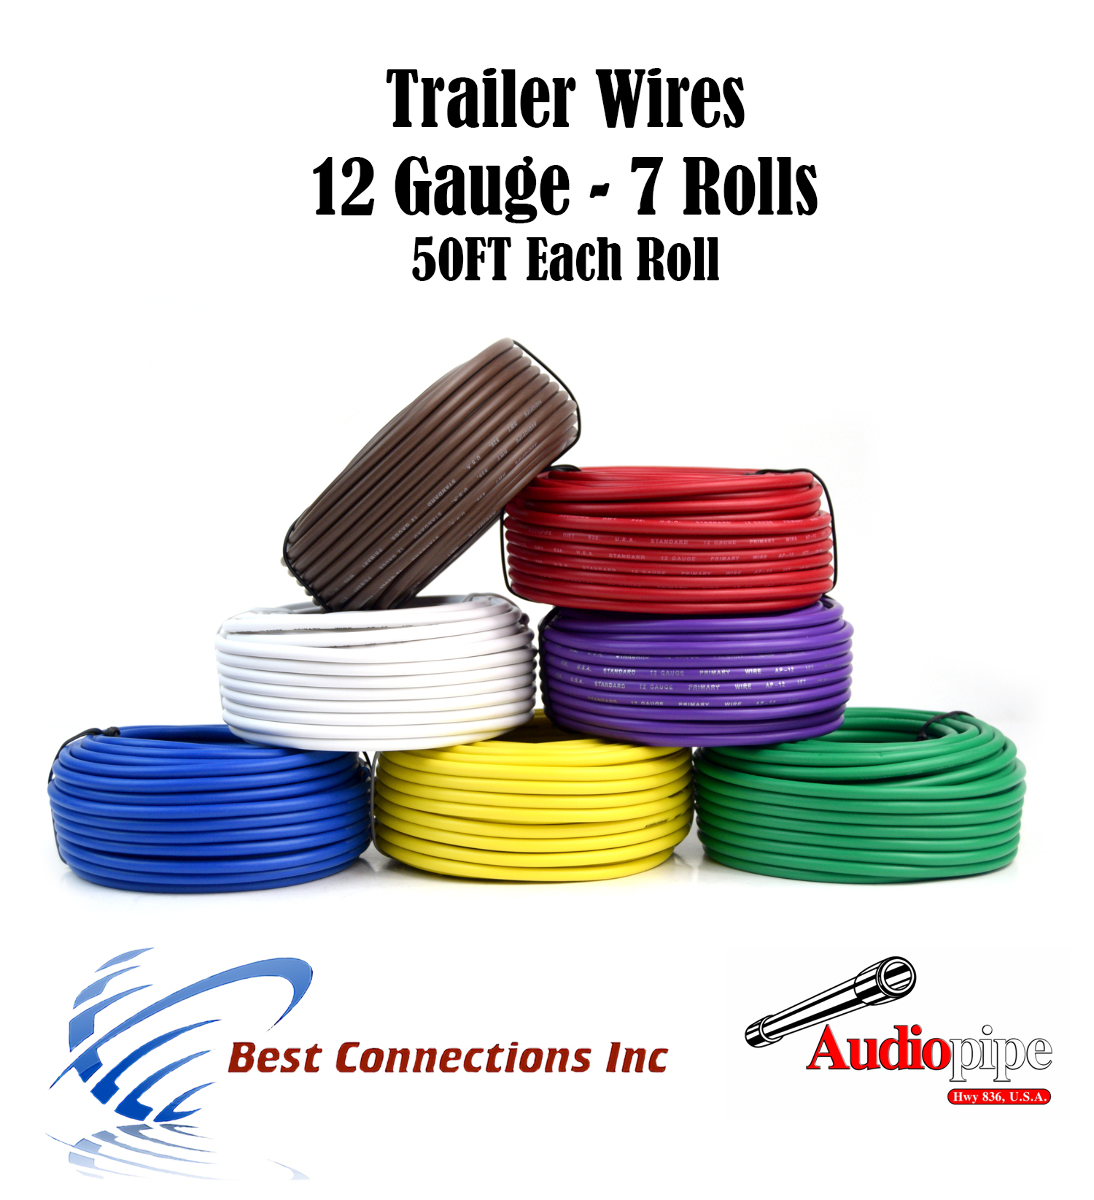 hight resolution of 7 way trailer wire light cable for harness 50 ft each roll 12 gauge 7 colors walmart com